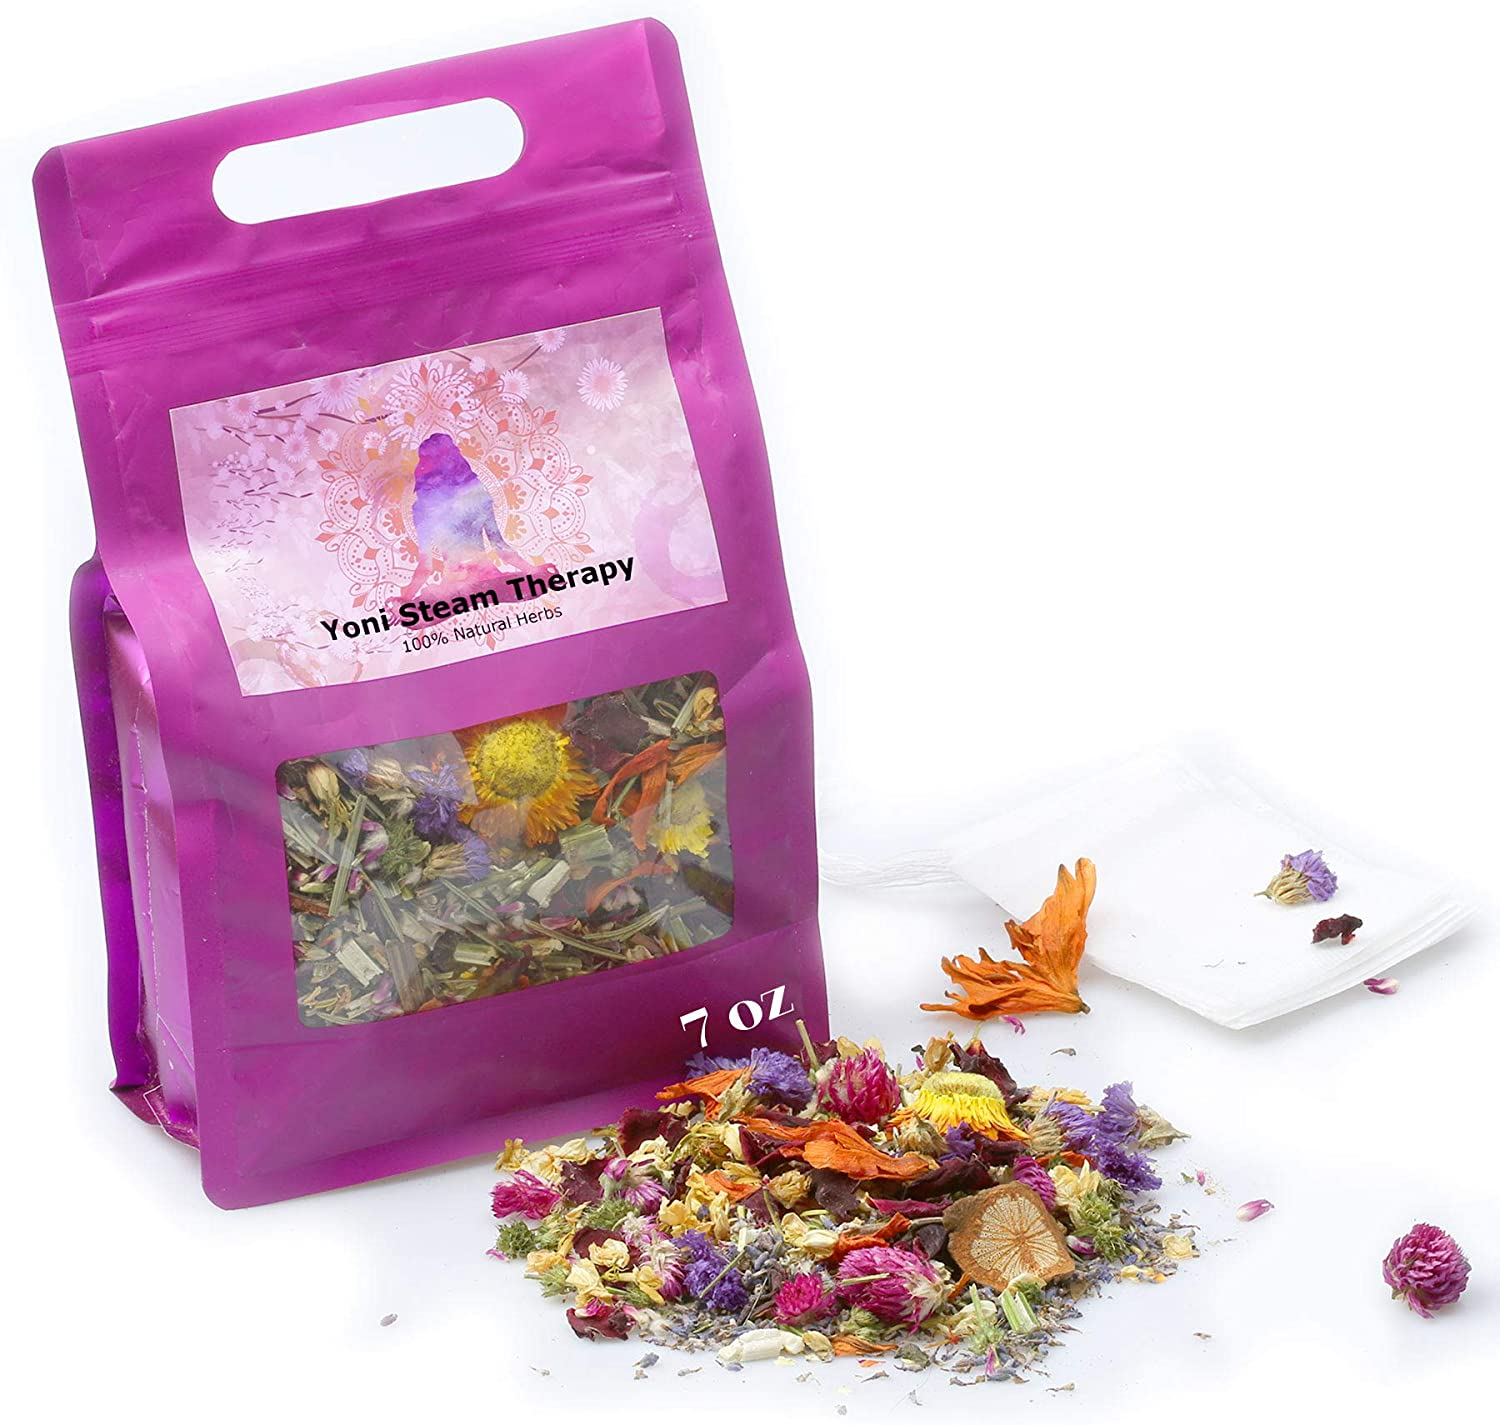 Bulk Yoni Steam Herbs for Cleansing and Tightening, 7 Ounce (15 Steams) V Steaming Herbs Detox, Vaginal Steam Home Spa Bath, Natural Herbal Steaming Kit for Women Menstrual Cycle Fertility Menopause